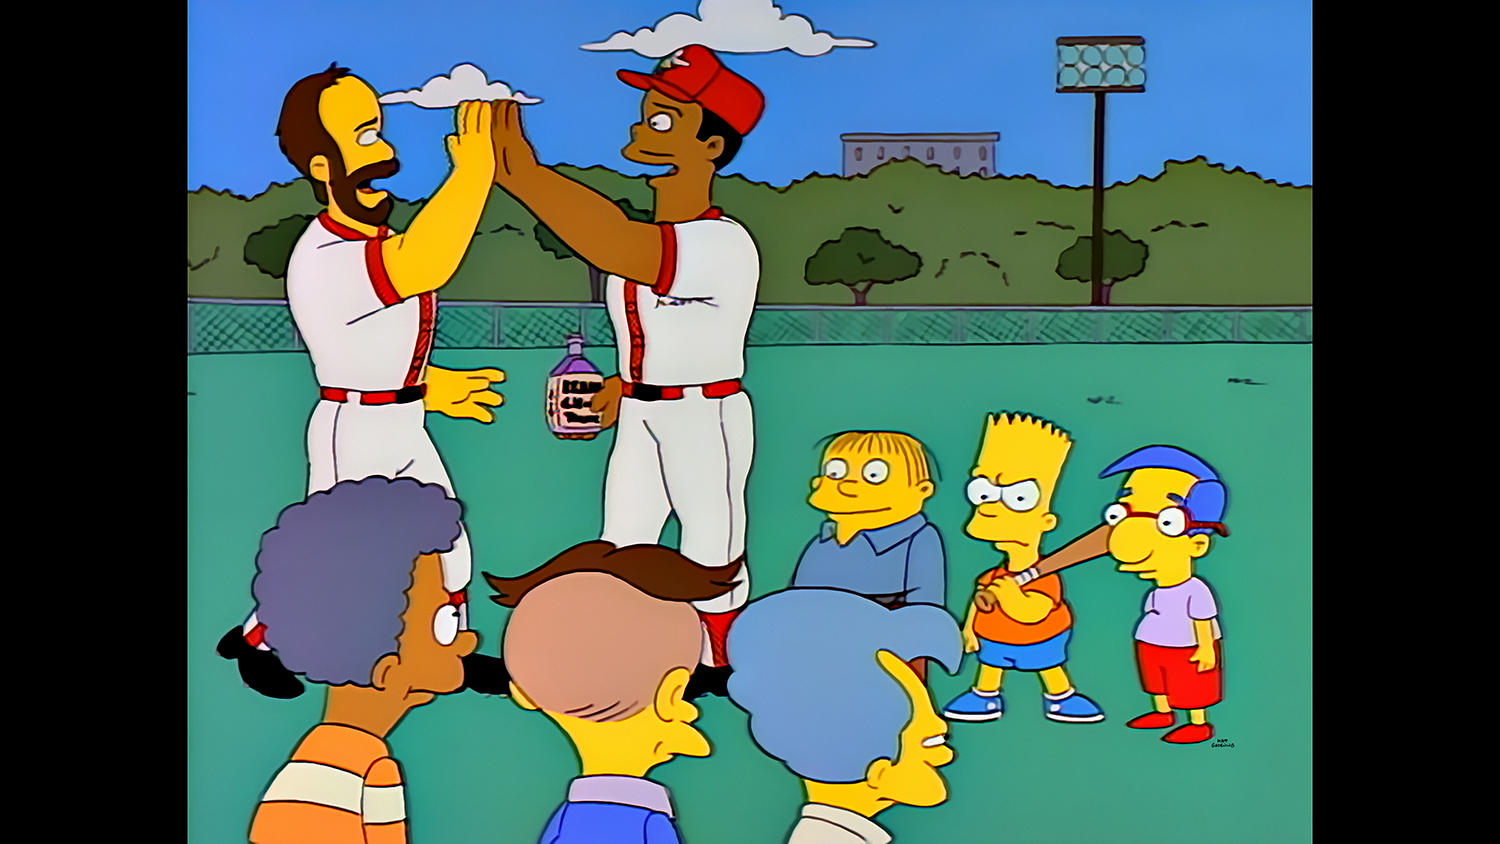 Hall of Famers Wade Boggs (left player) and Ken Griffey Jr. were among the professional baseball players featured in THE SIMPSONS 'Homer at the Bat' episode.